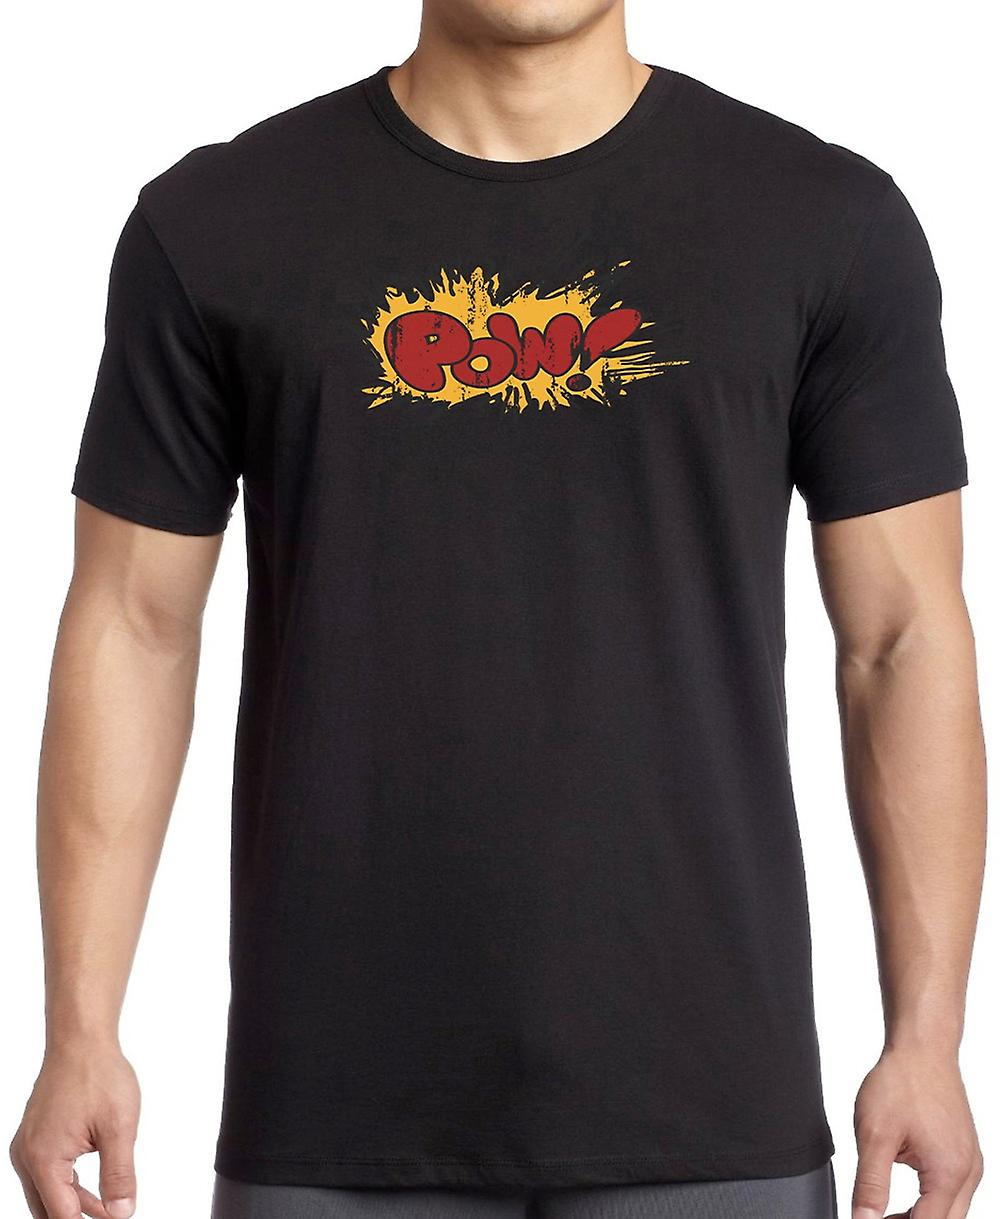 POW - Cartoon-Explosion - lustige T Shirt